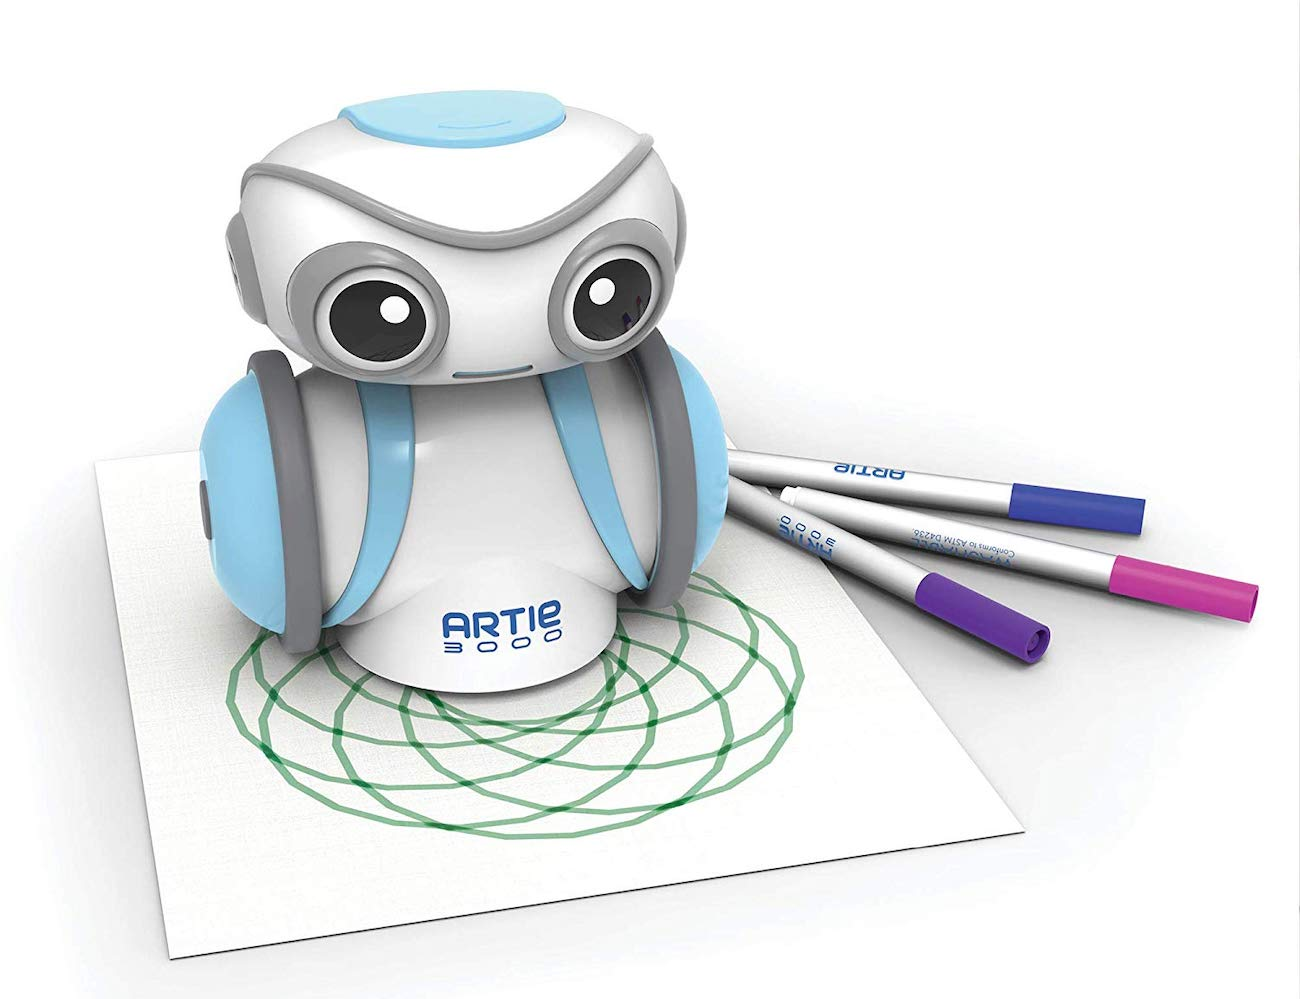 Artie 3000 Coding Drawing Robot